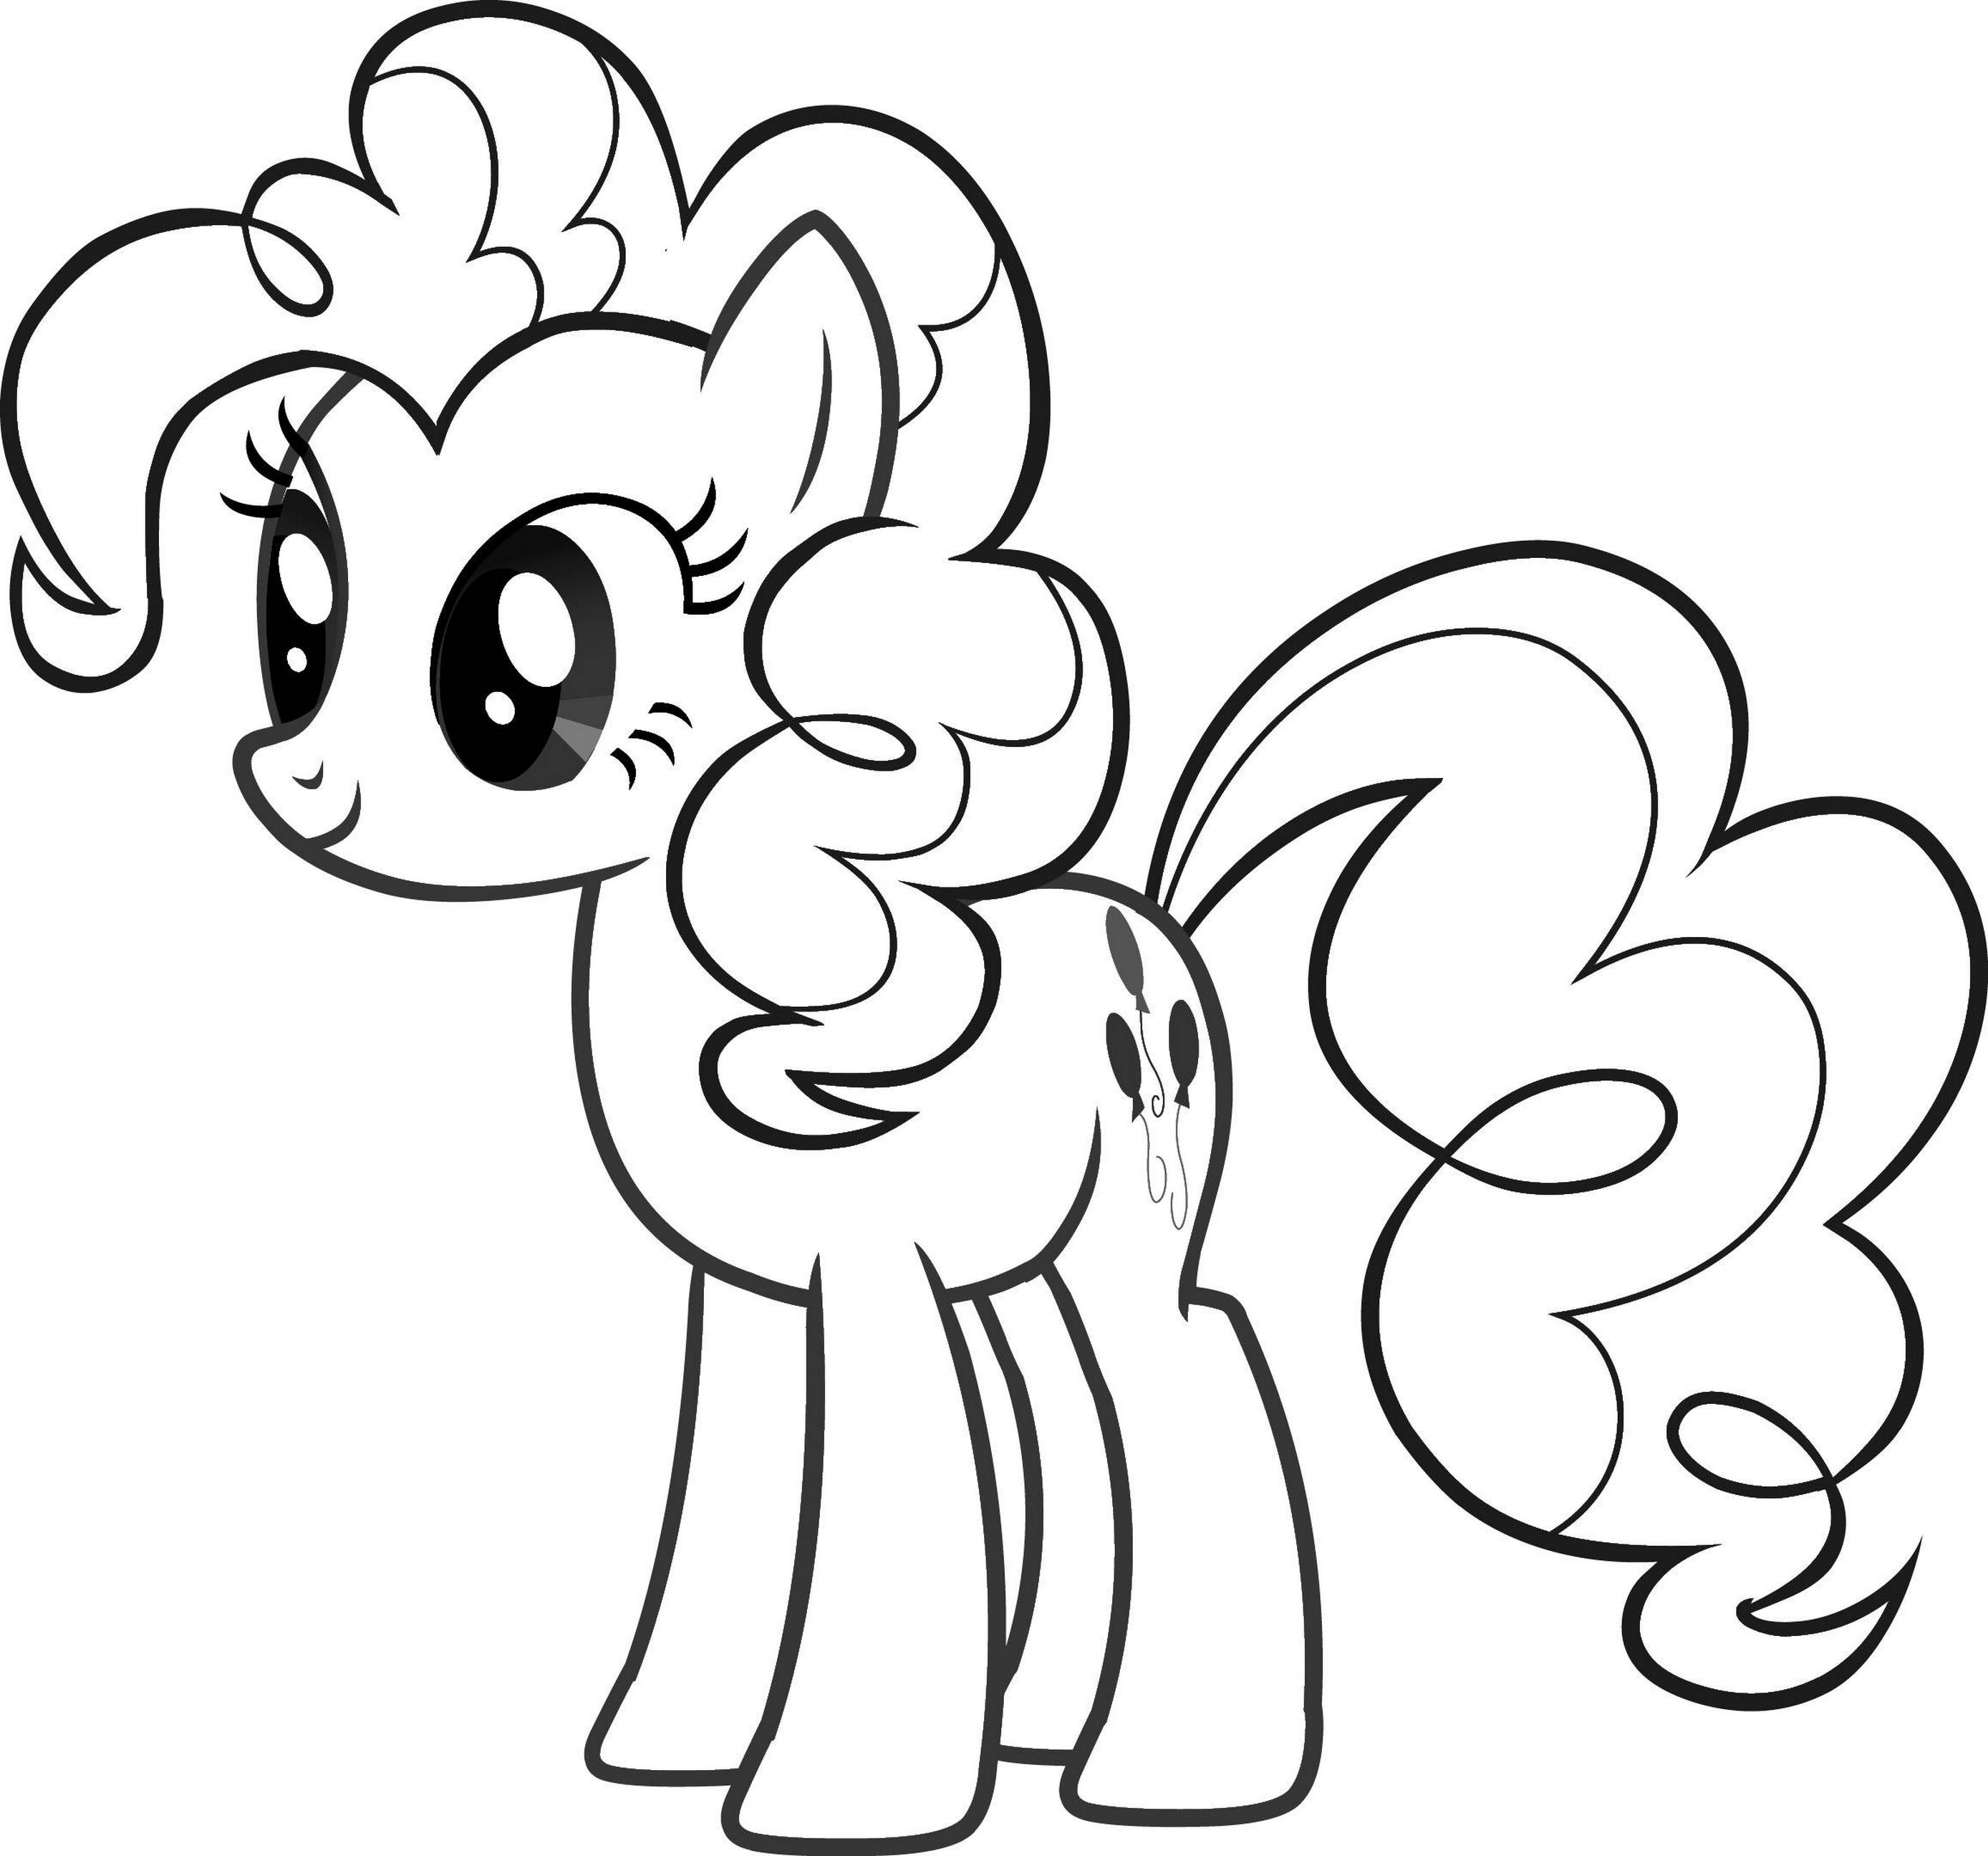 Unicorn Coloring Pages Online - Coloring Home